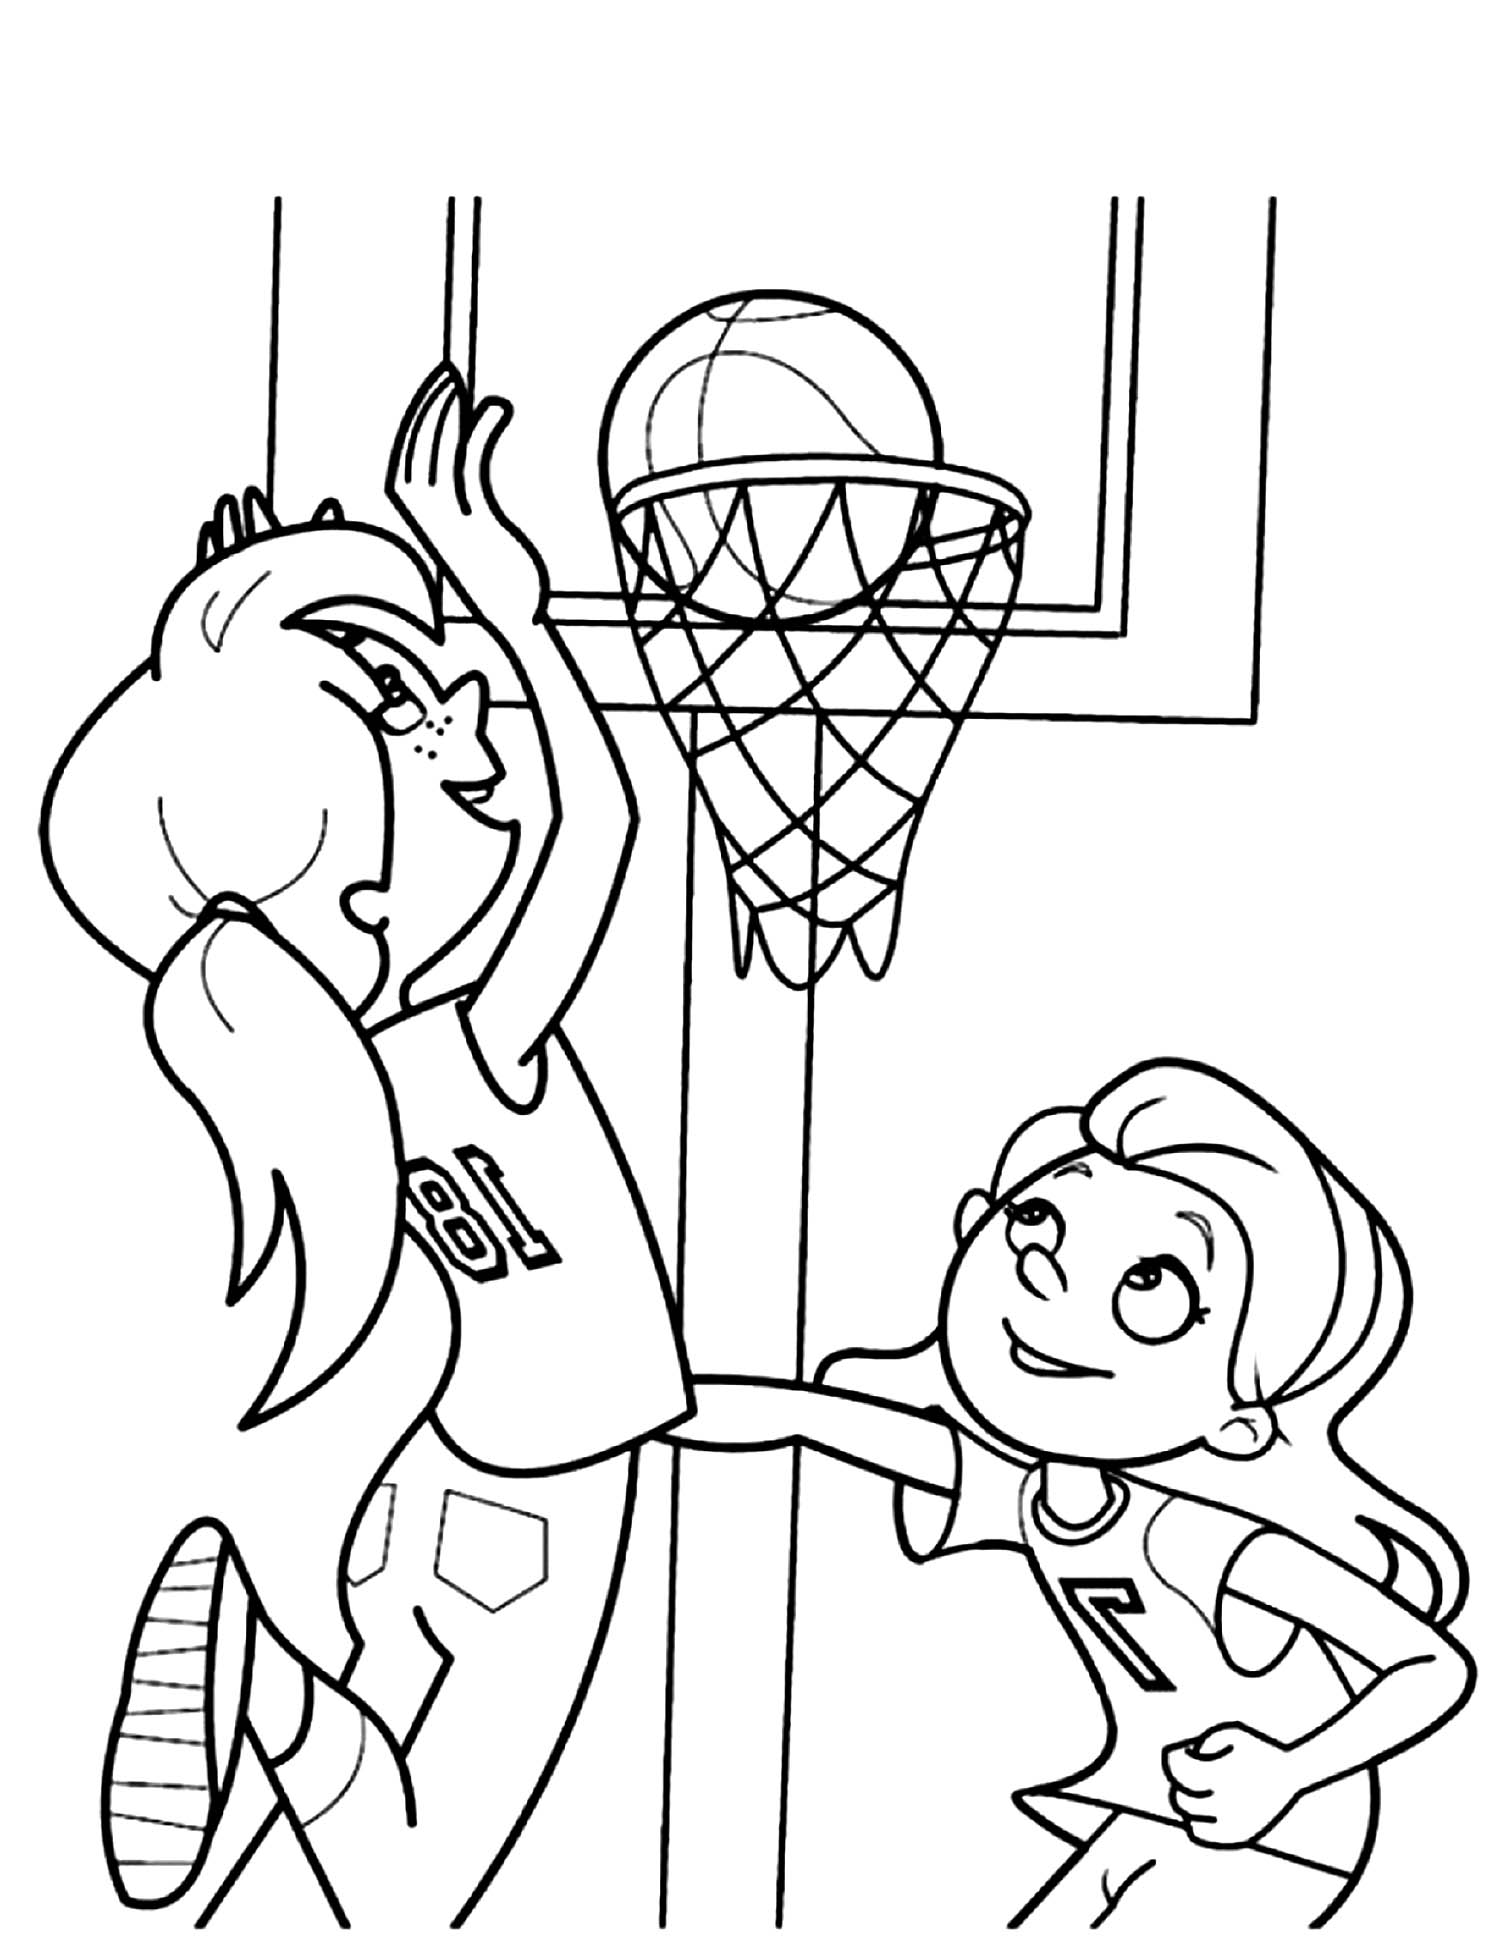 Girls Playing Basketball Coloring Page - Letscolorit.com